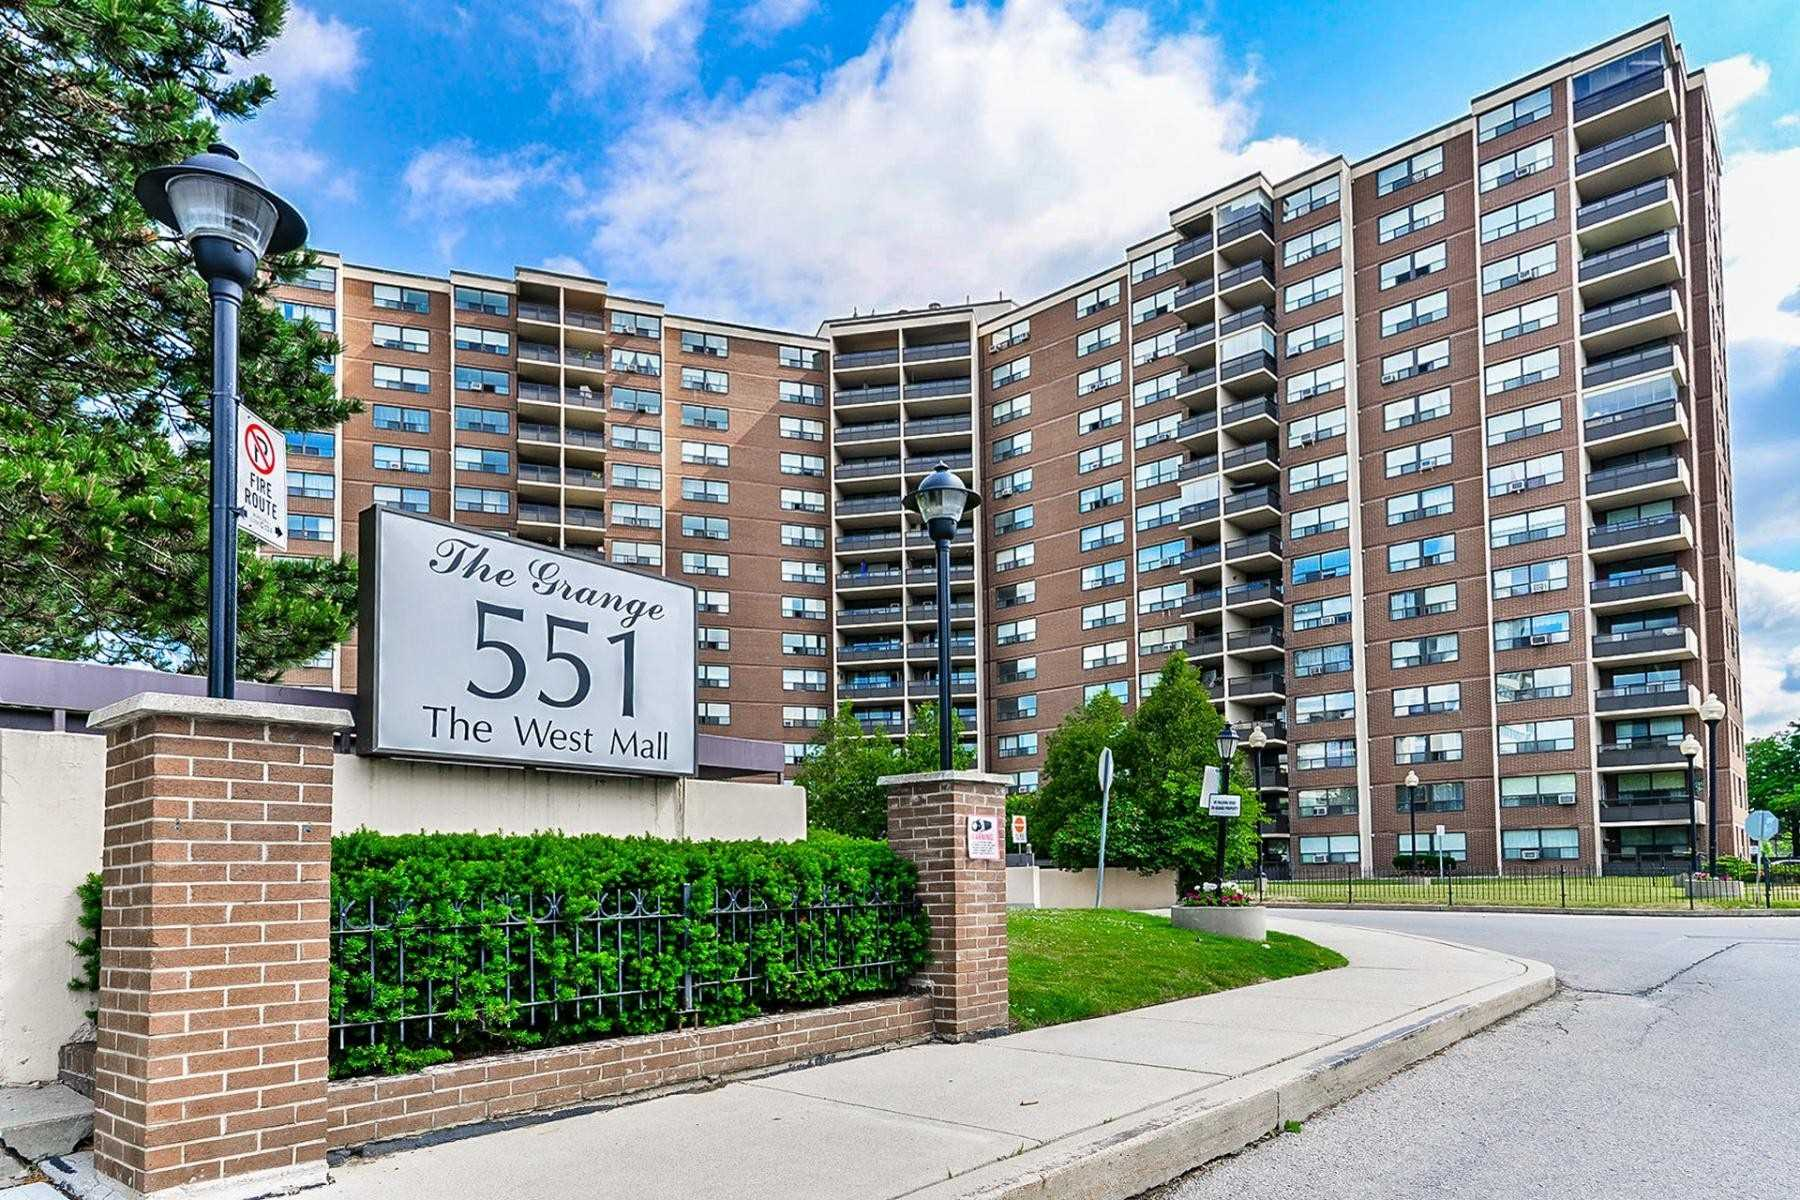 1021 - 551 The West Mall Ave, Toronto, M9C 1G7